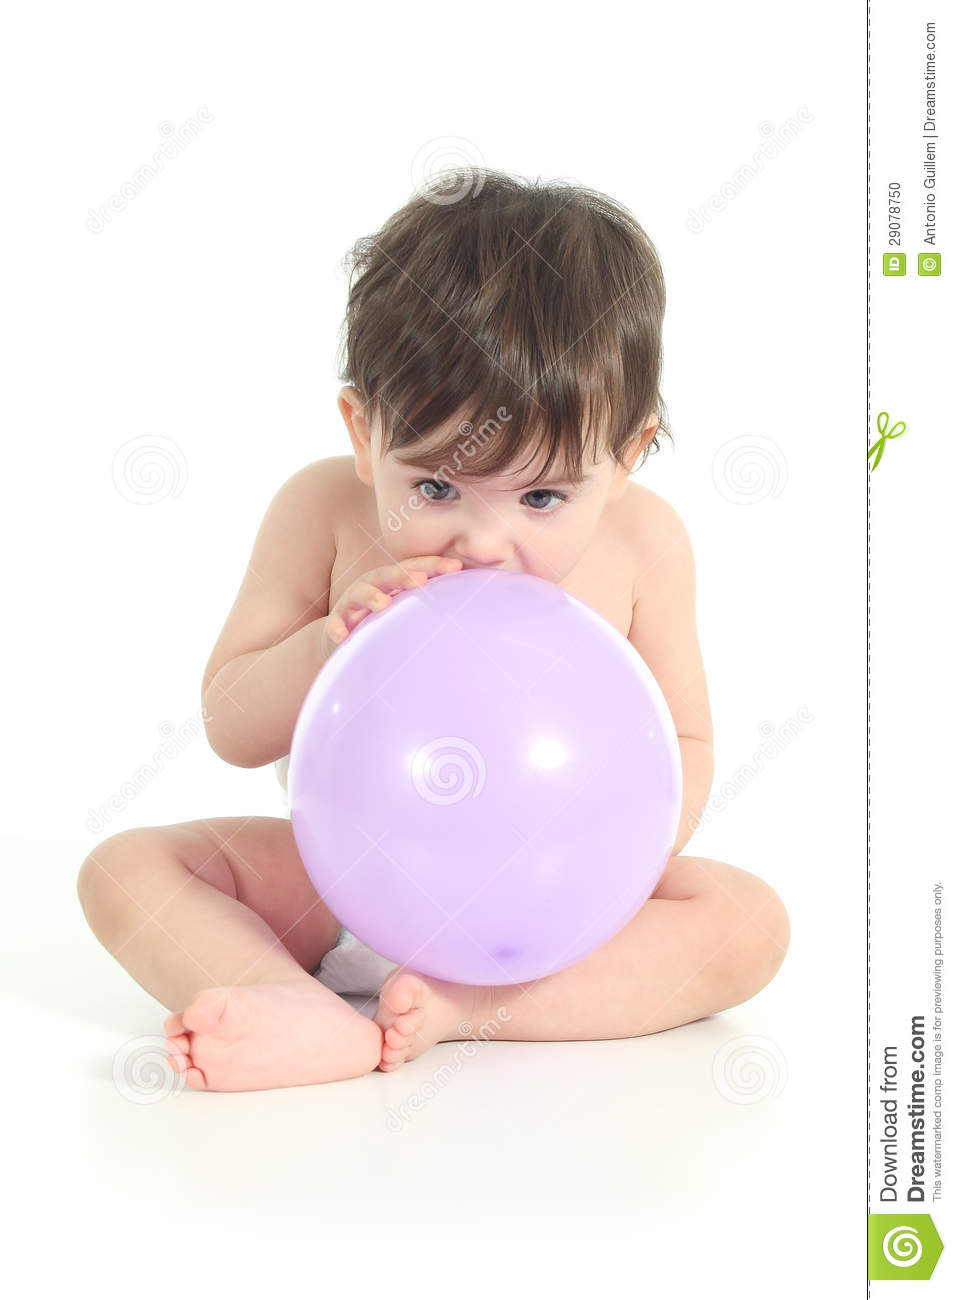 little girl holding balloon xxx porn library. Black Bedroom Furniture Sets. Home Design Ideas